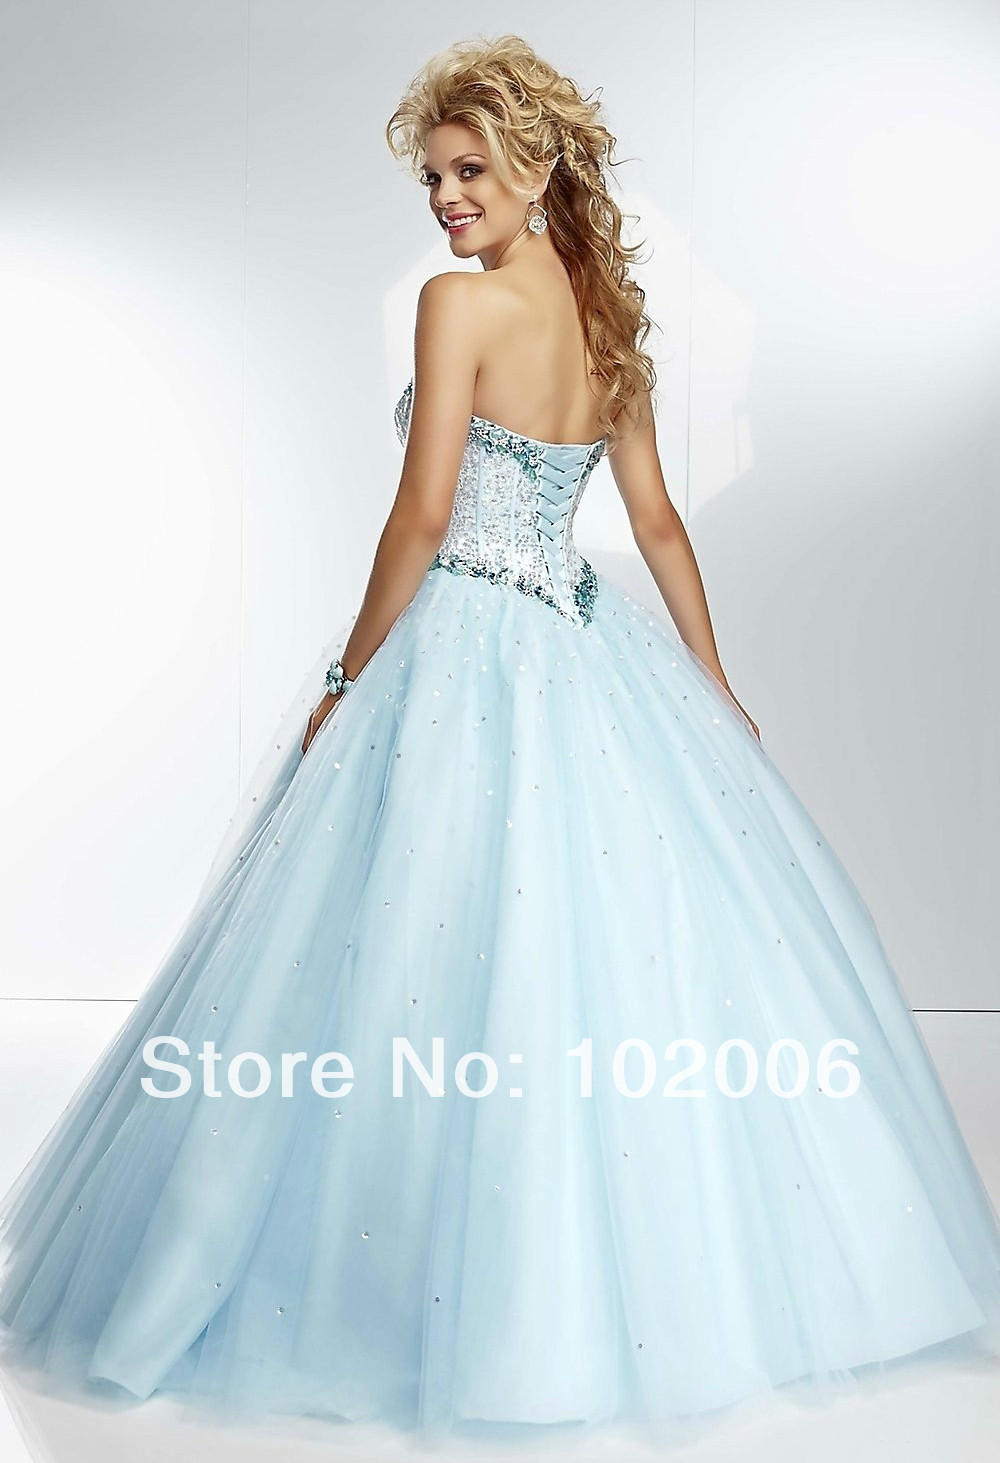 35187033a92 Baby Blue Prom Dress Uk - Gomes Weine AG